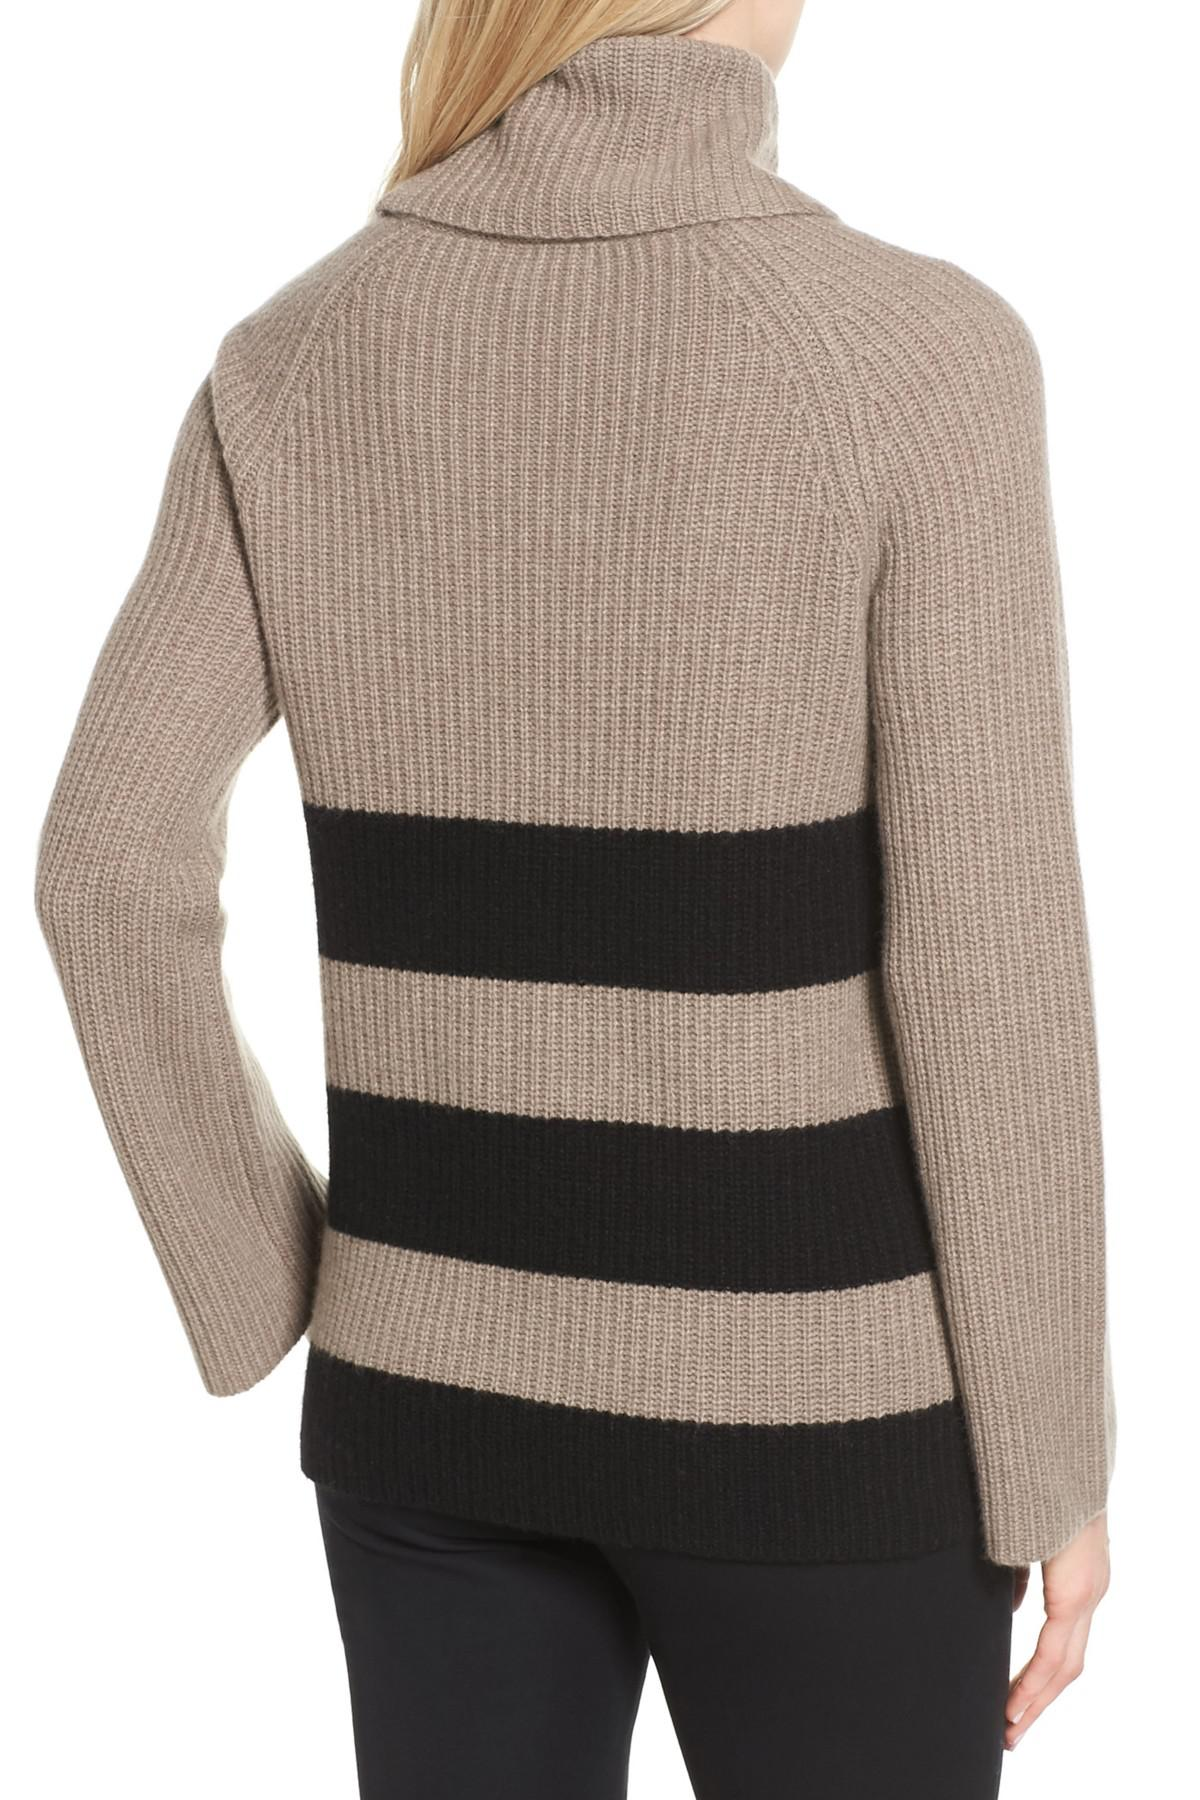 9165306e1e Gallery. Previously sold at  Nordstrom Rack · Women s Choker Sweaters ...